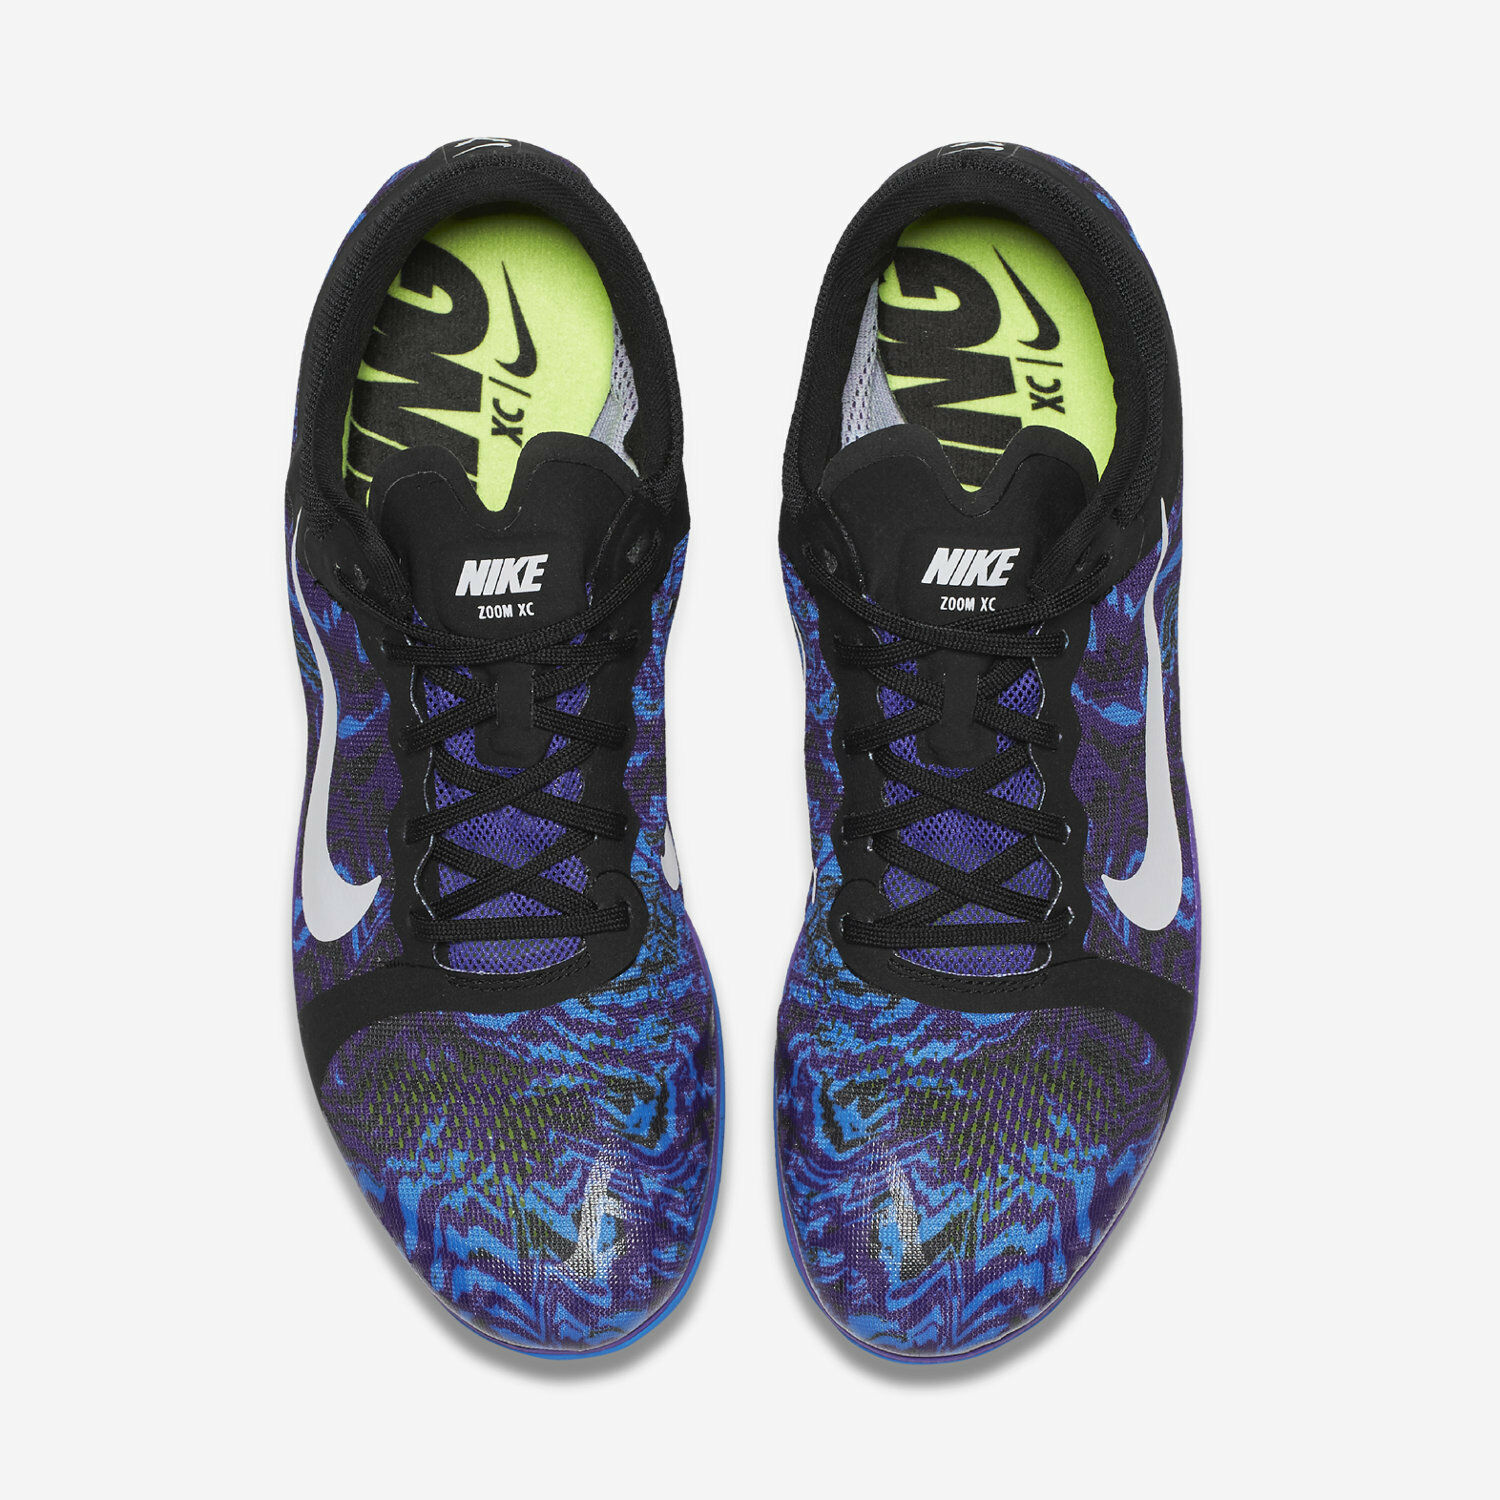 093dc2618f91 ... Nike Zoom XC Track and Field Spikes - - - Hyper Grape White Black Blue  844132 ...